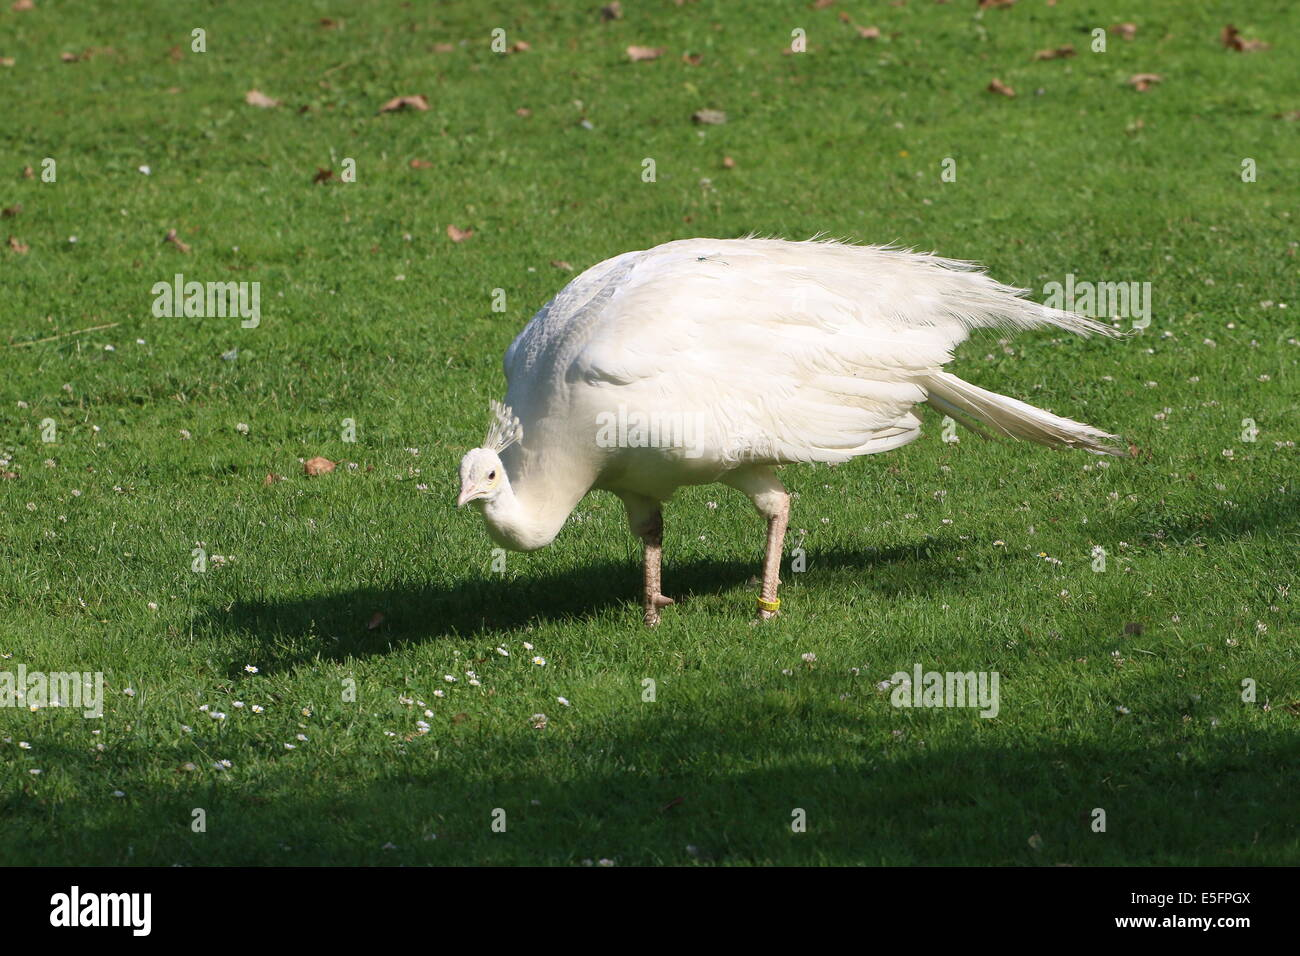 Leucistic or all white variety of the  Blue Peacock or Indian Peafowl (Pavo cristatus alba) - Stock Image